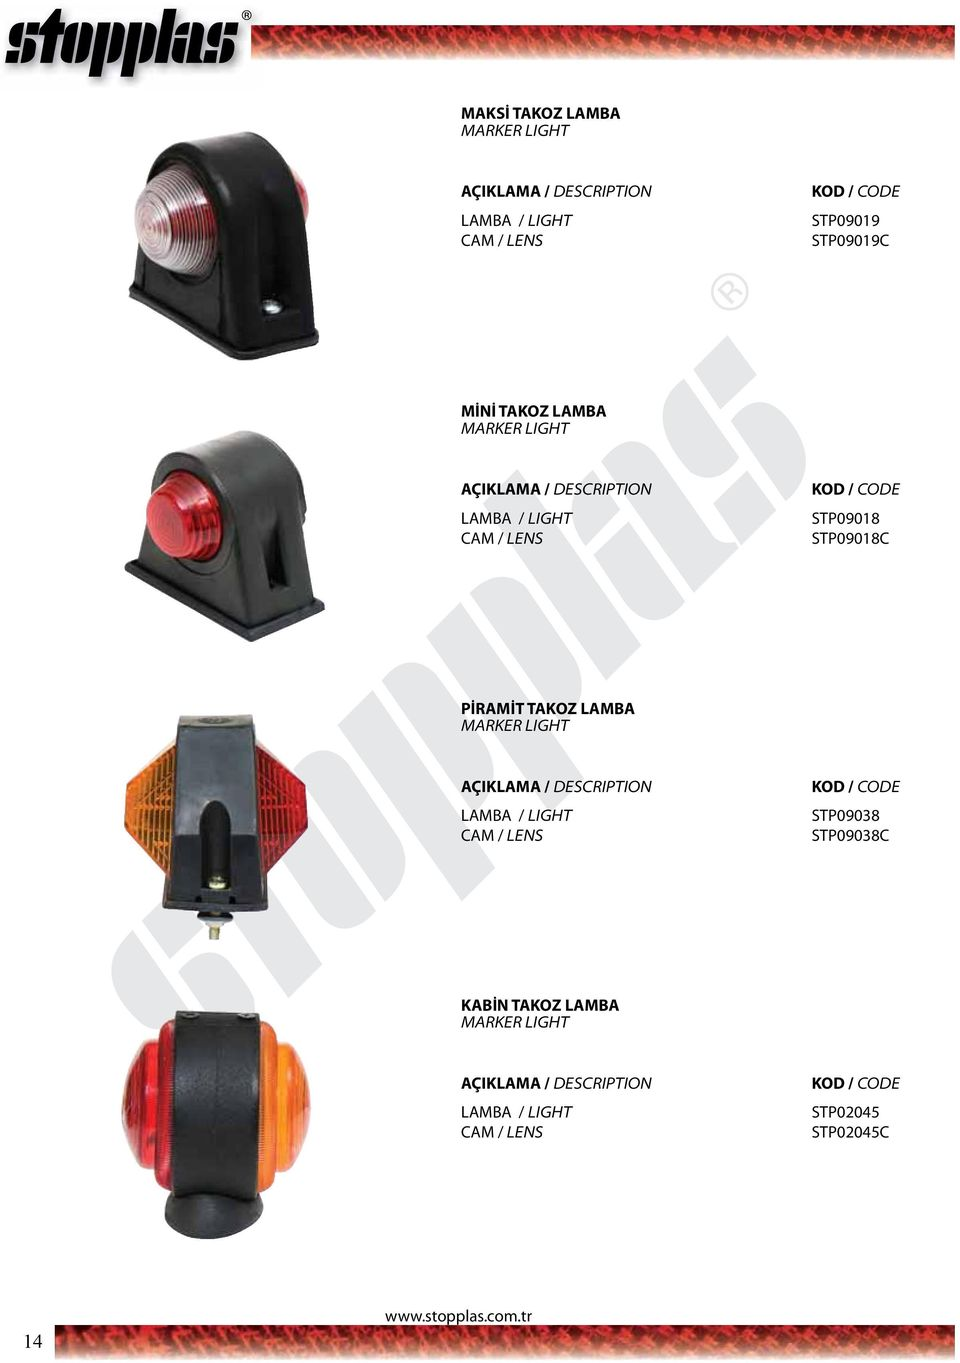 PİRAMİT TAKOZ LAMBA MARKER LIGHT STP09038